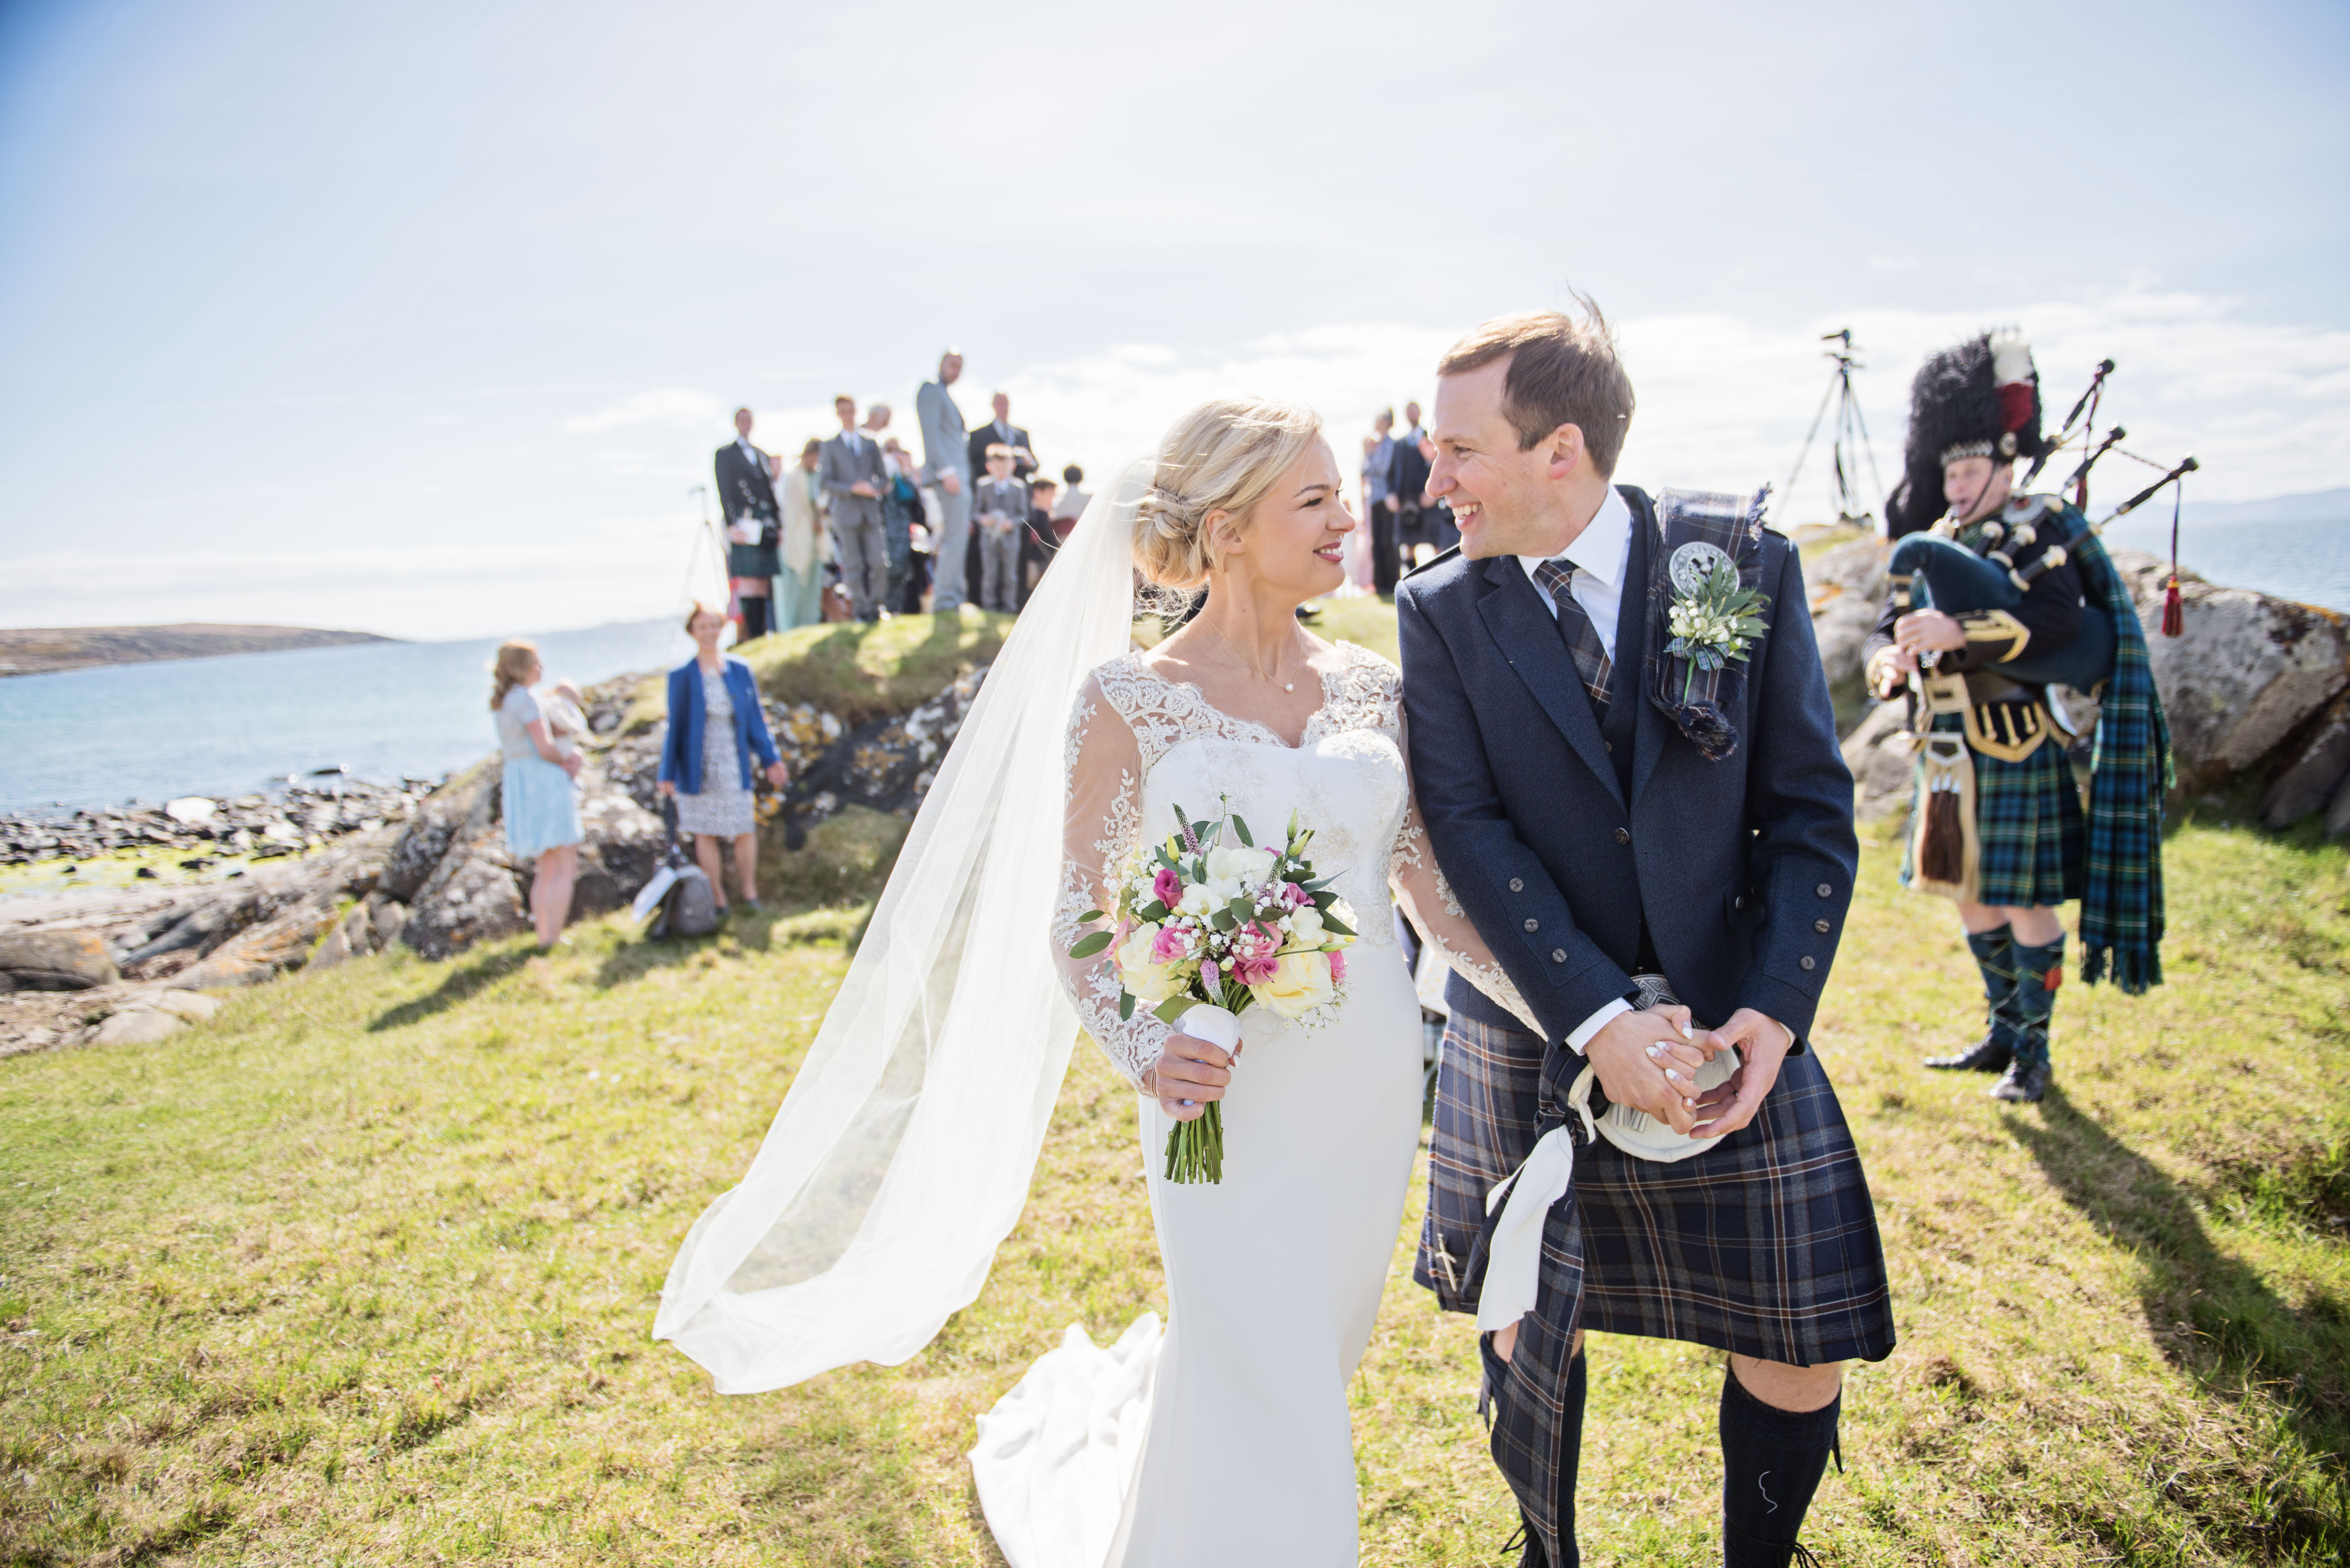 Katie-Neil-Crear-beach-coastal-wedding-venue-couple-bride-groom.jpg